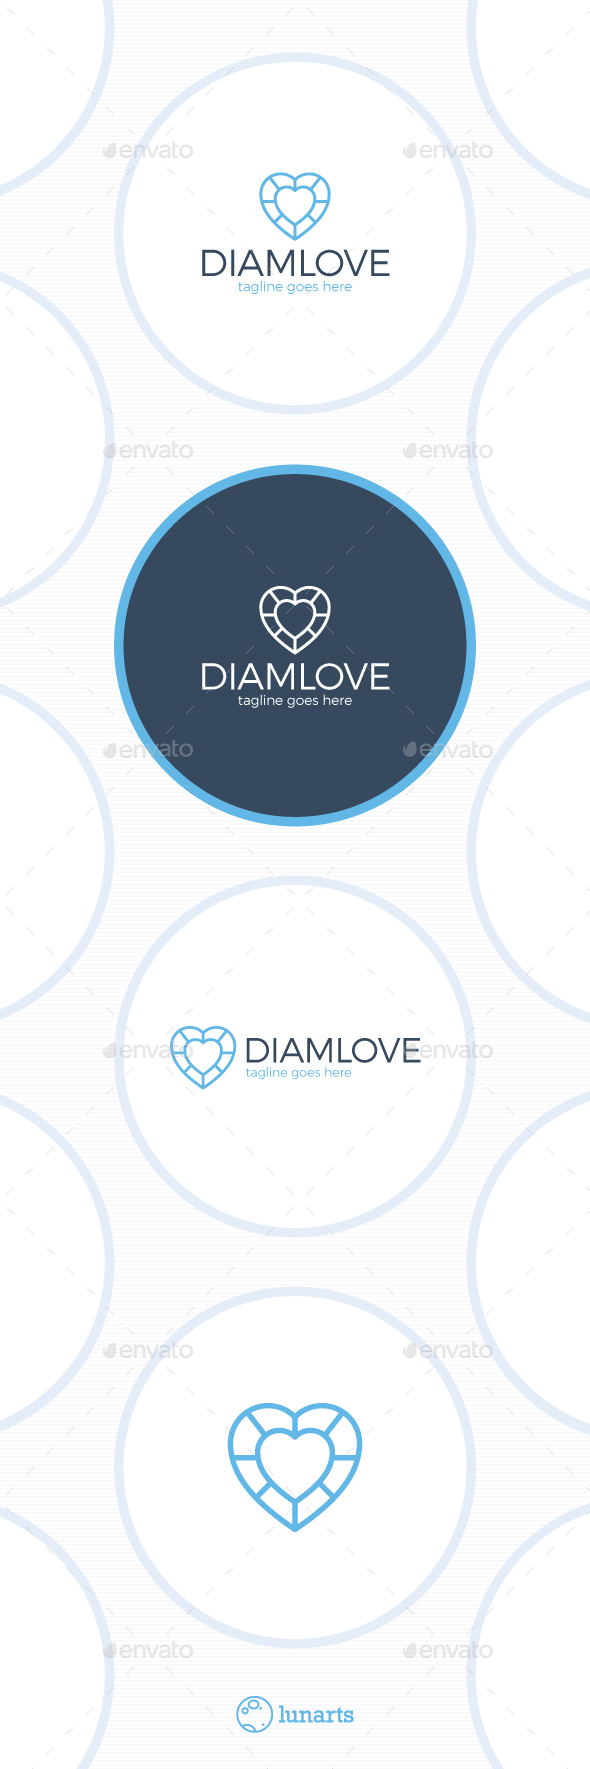 Diamond Love Logo - Two Heart - Symbols Logo Templates